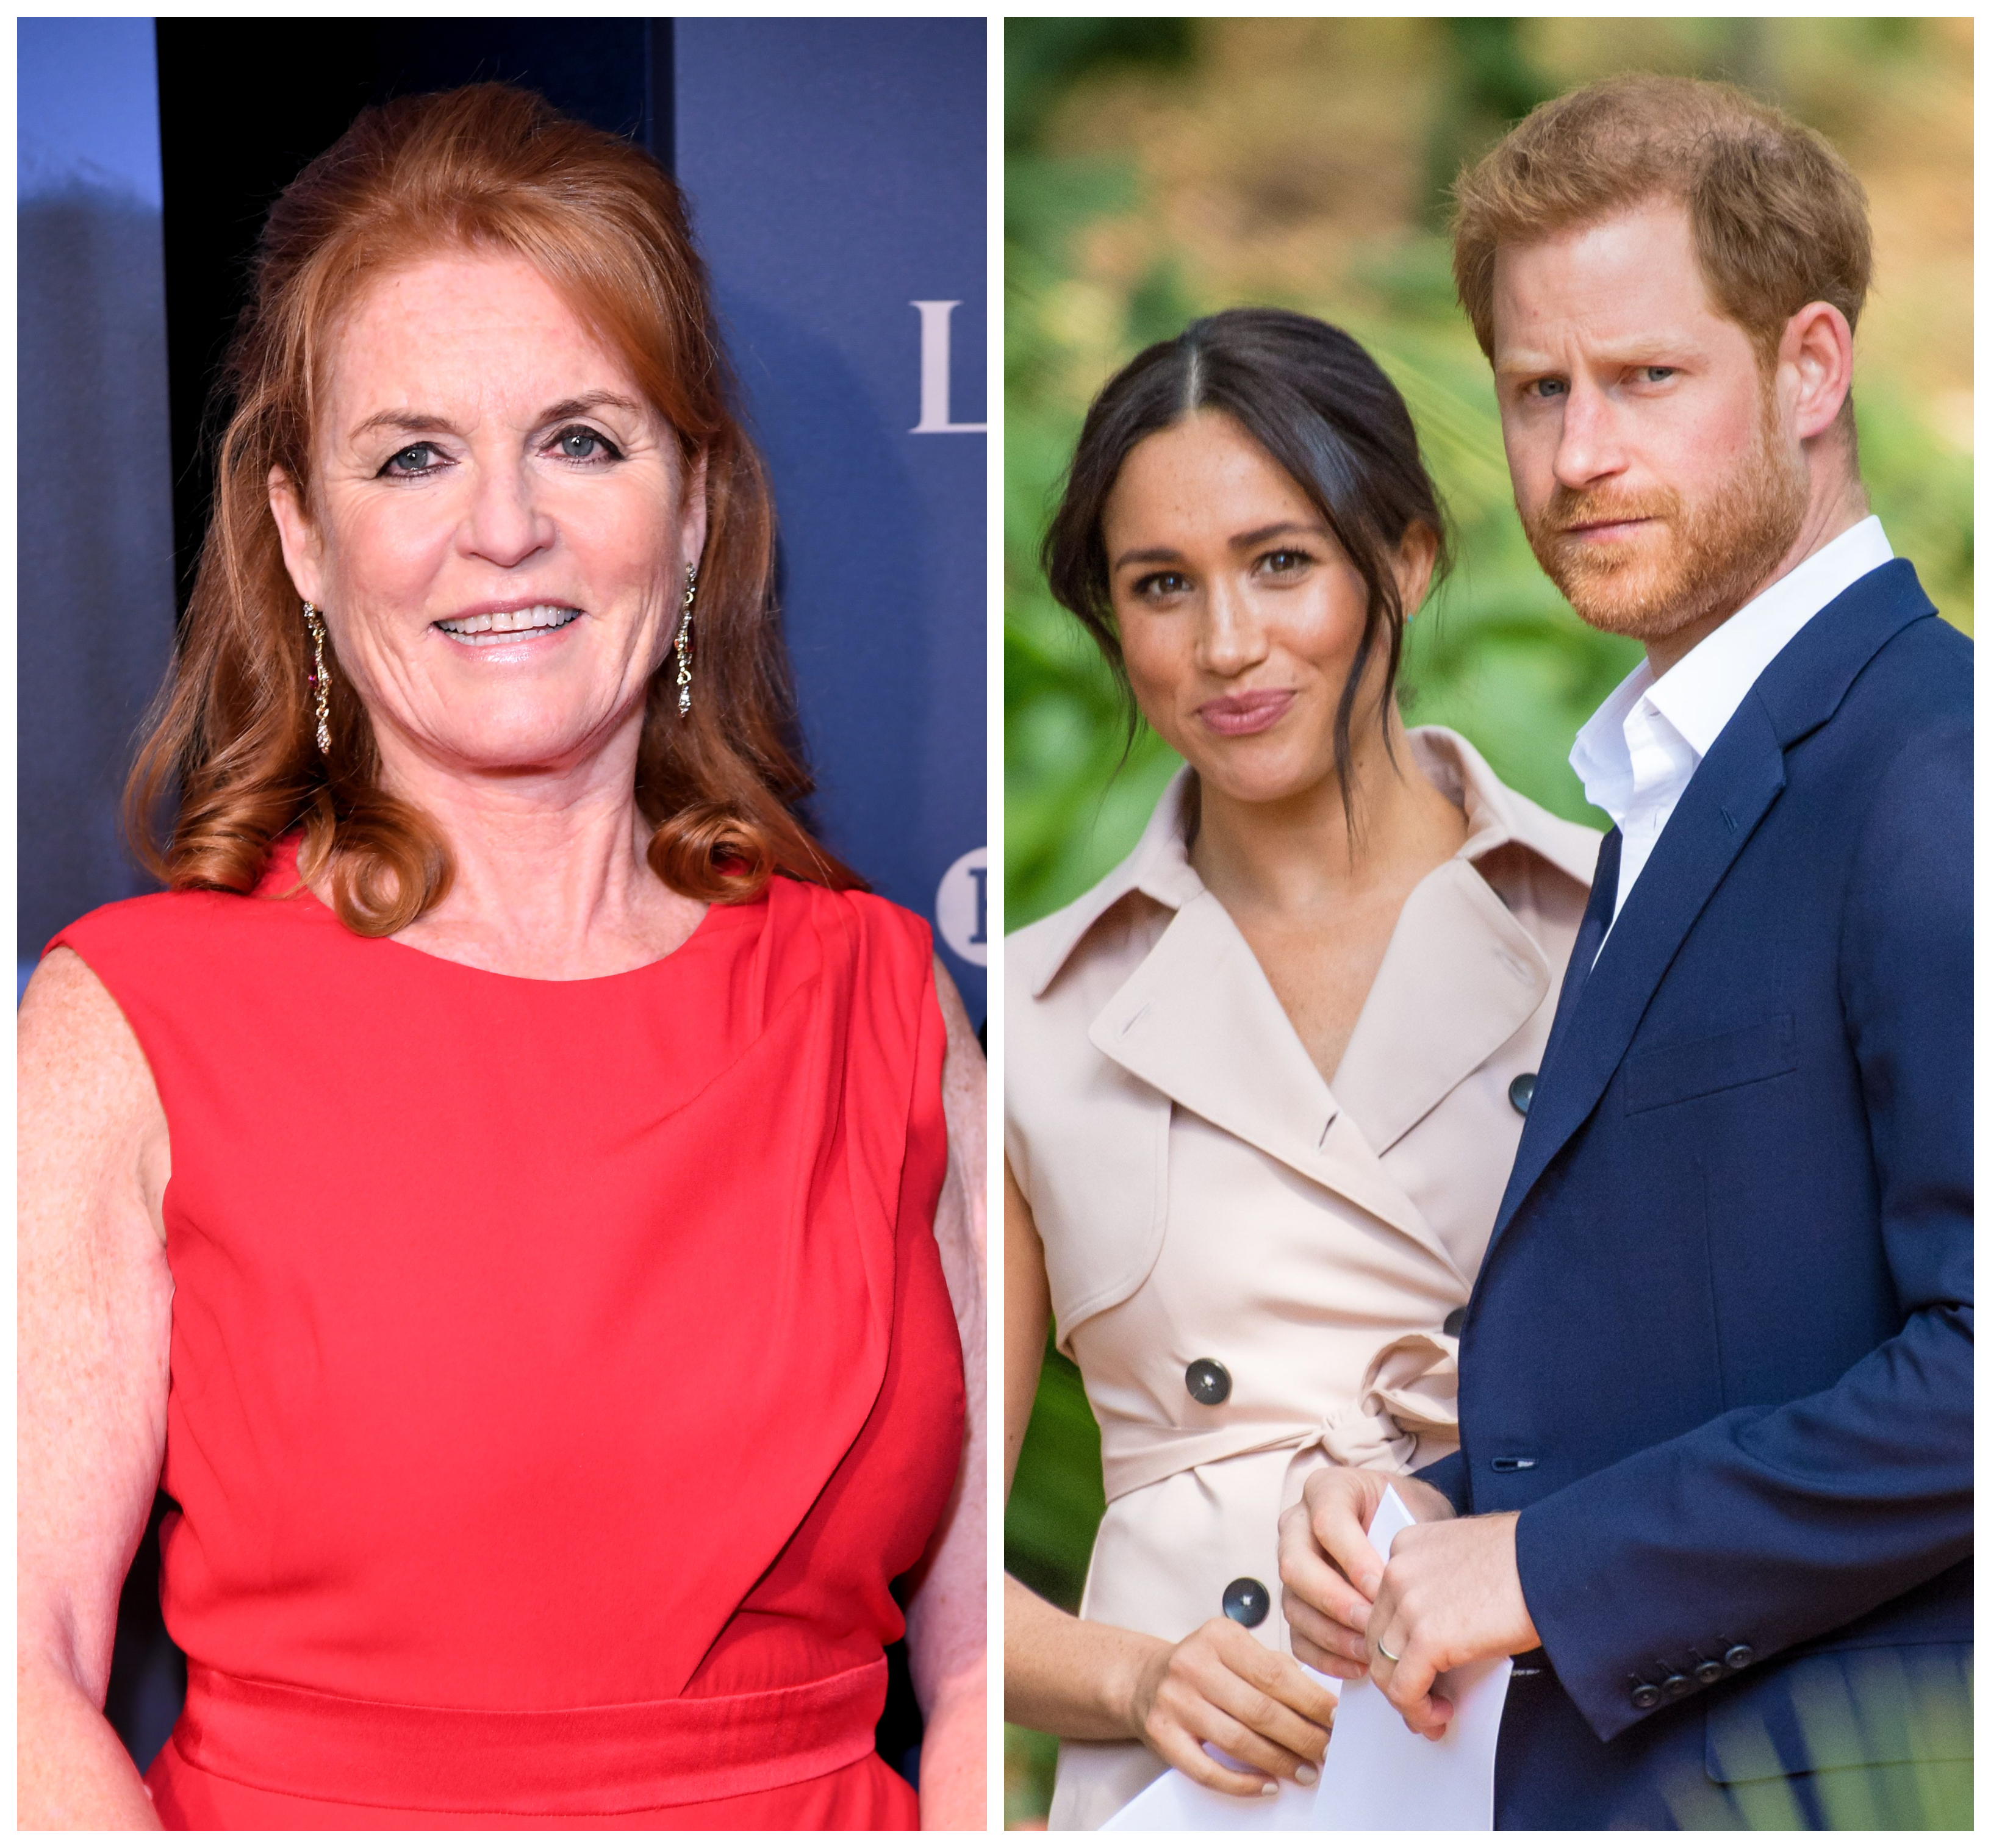 Topic Prince Harry: Princess Beatrice News, Articles, Stories & Trends For Today